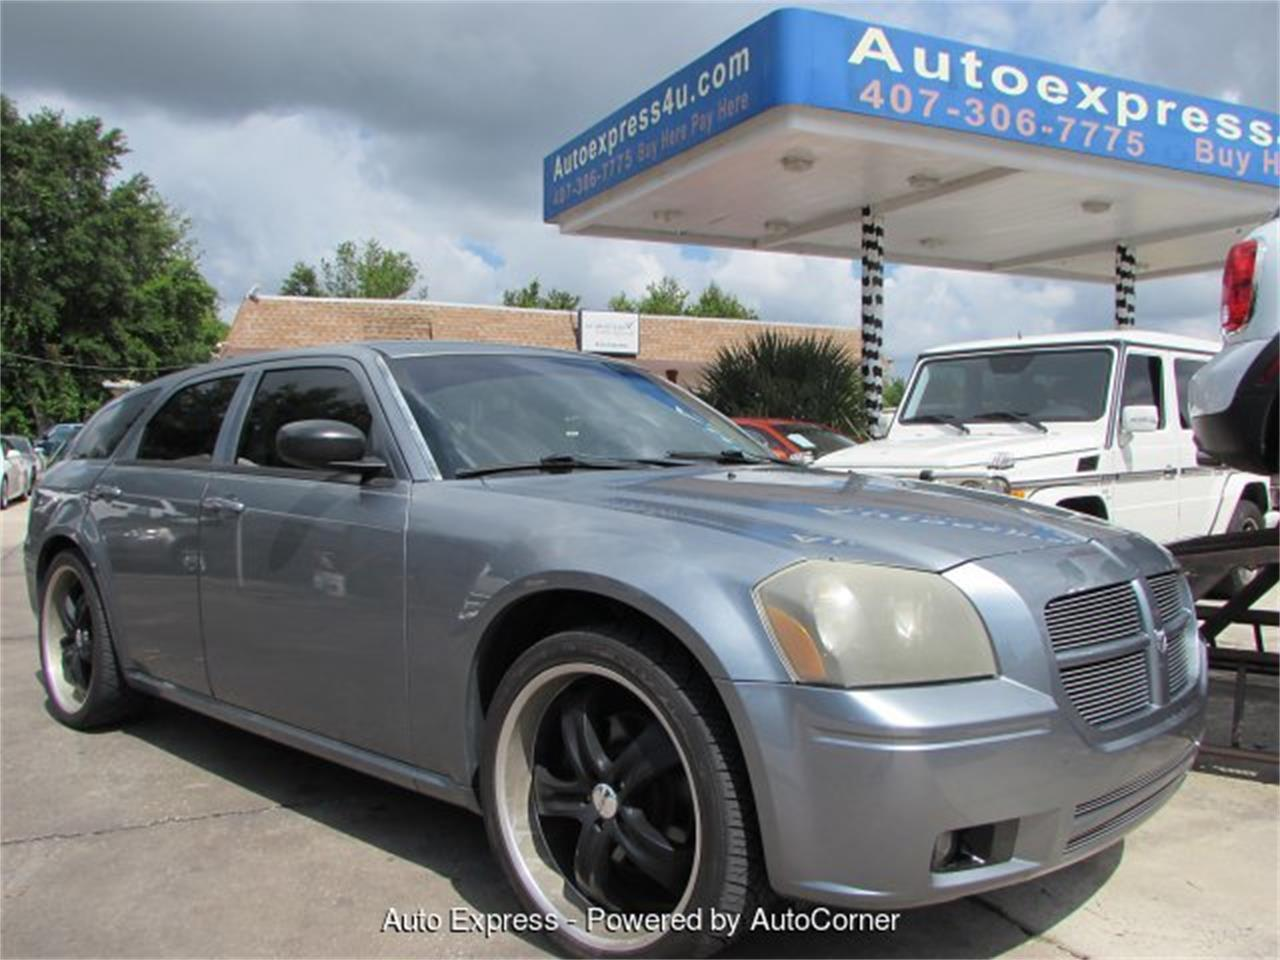 Dodge Magnum For Sale Near Me >> 2007 Dodge Magnum For Sale Classiccars Com Cc 1134844